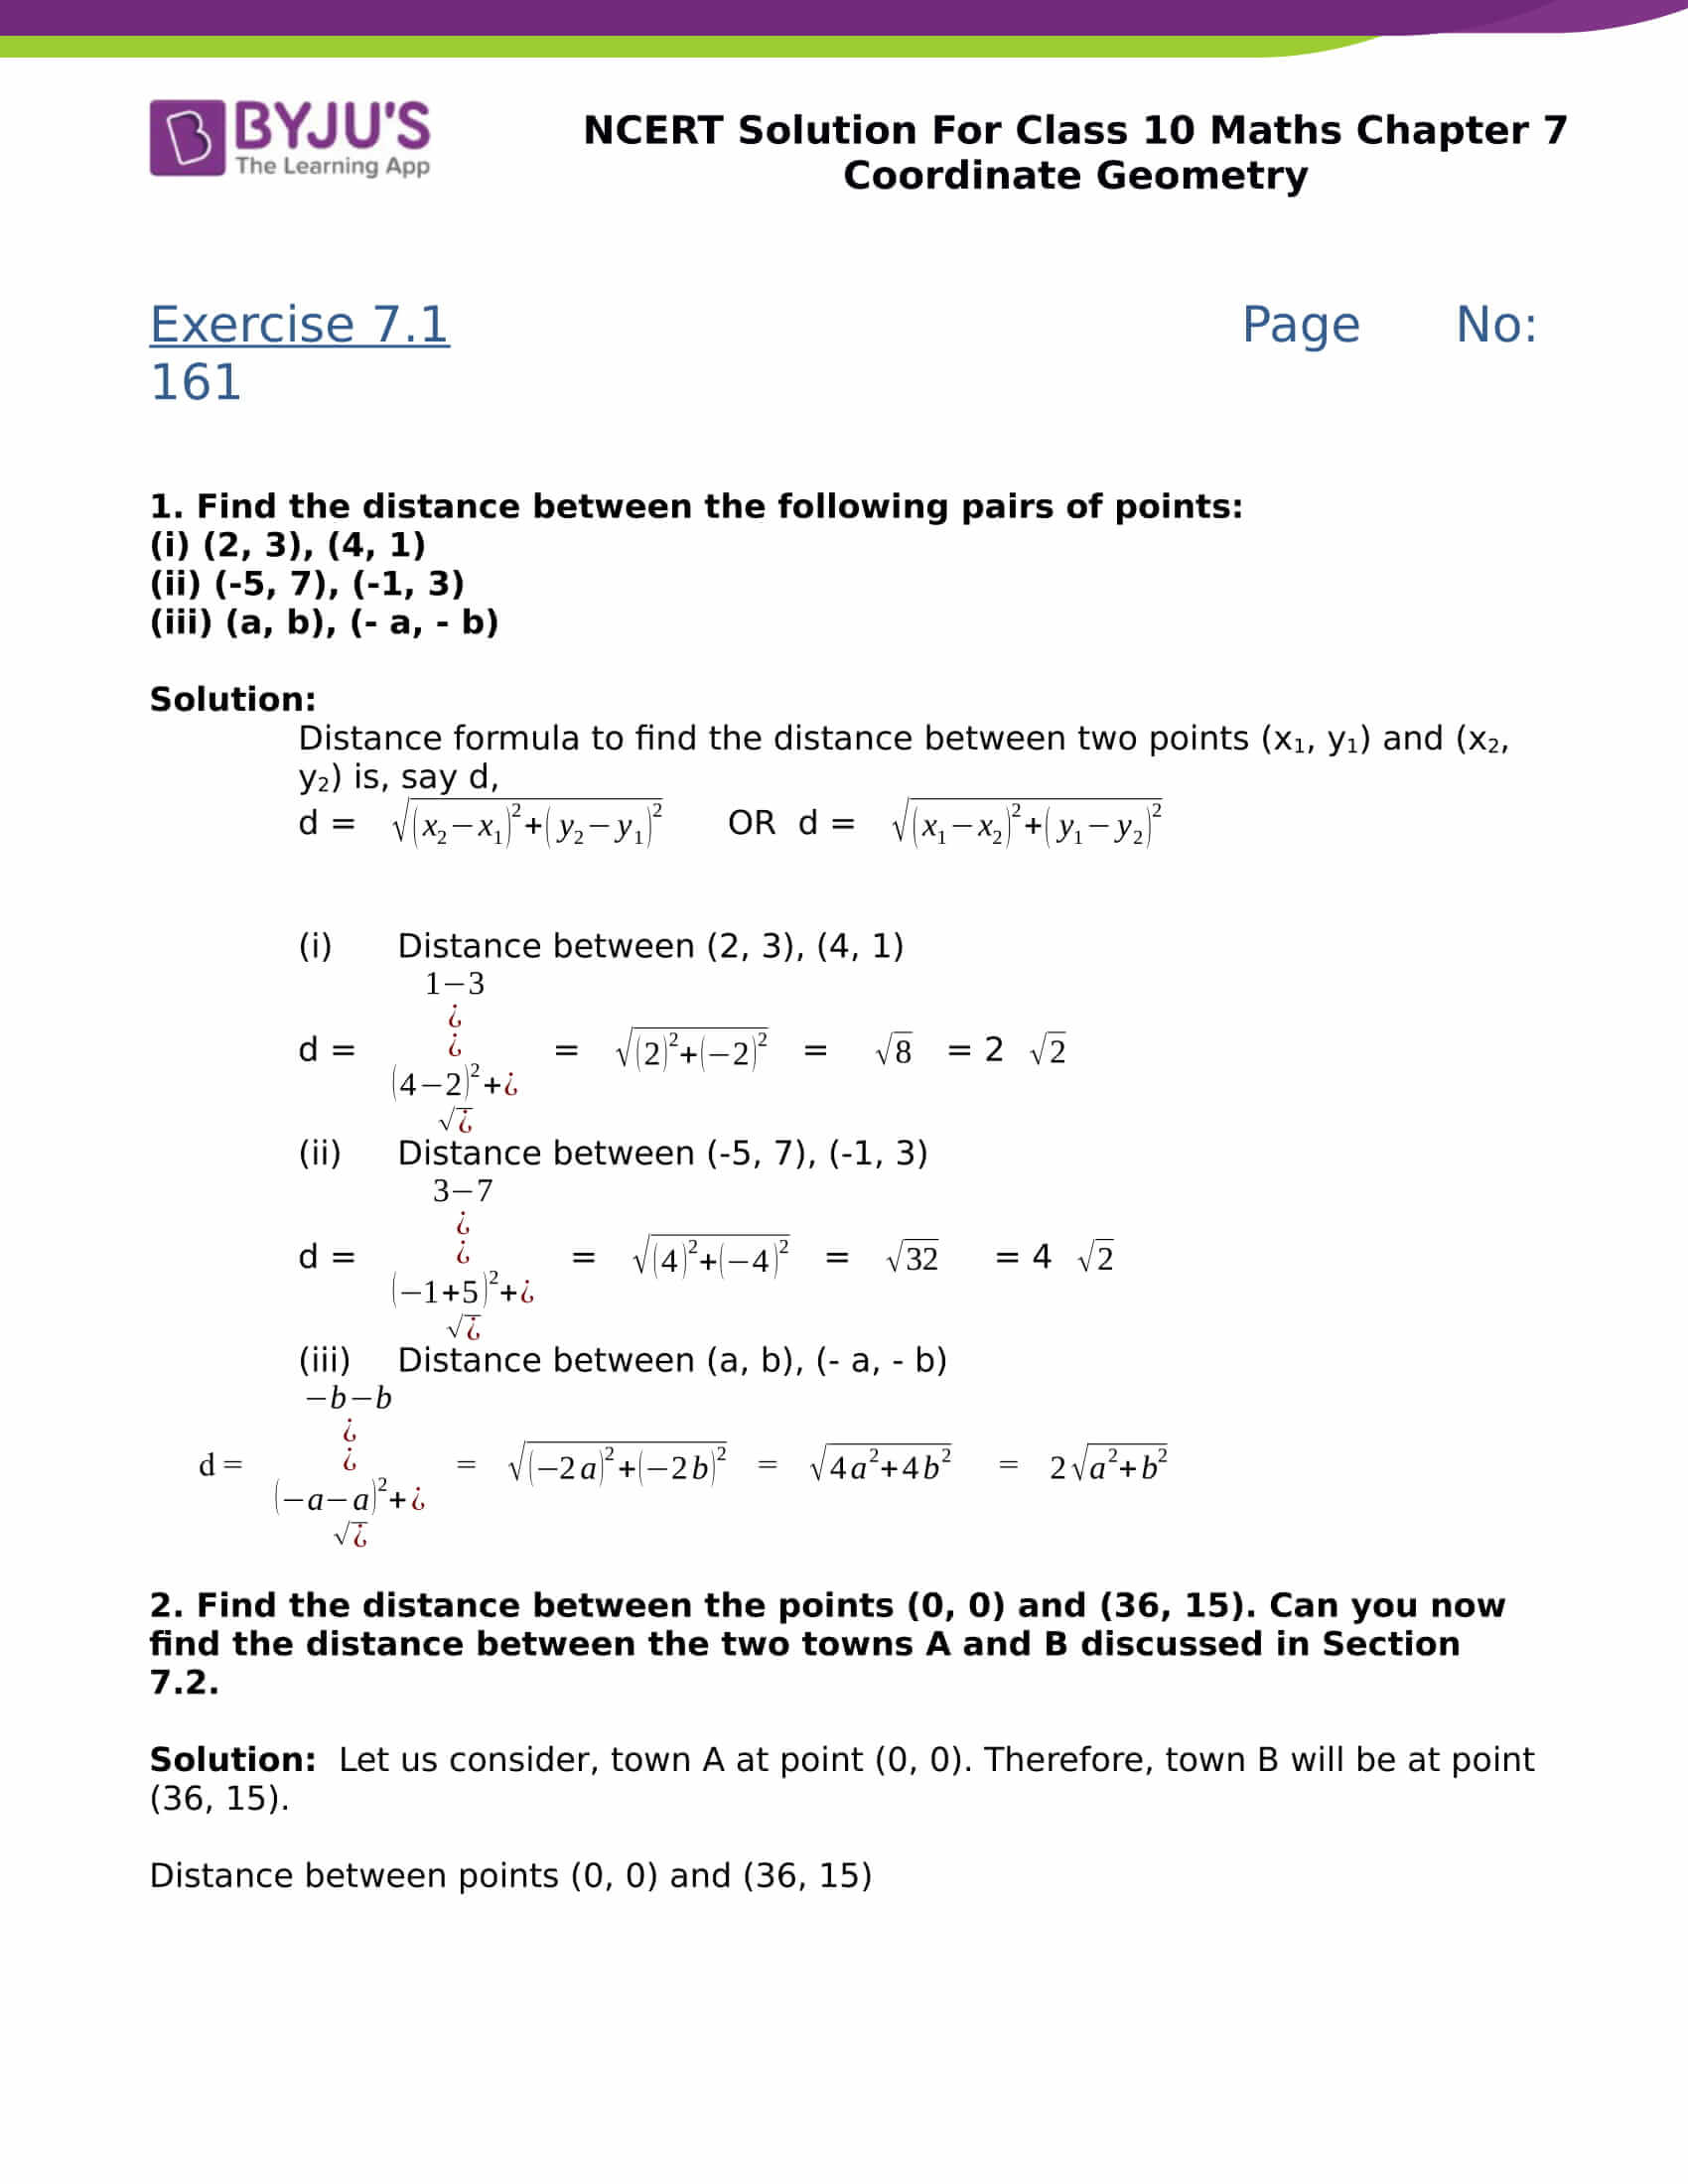 NCERT Solutions Class 10 Maths Chapter 7 Coordinates Geometry - Free